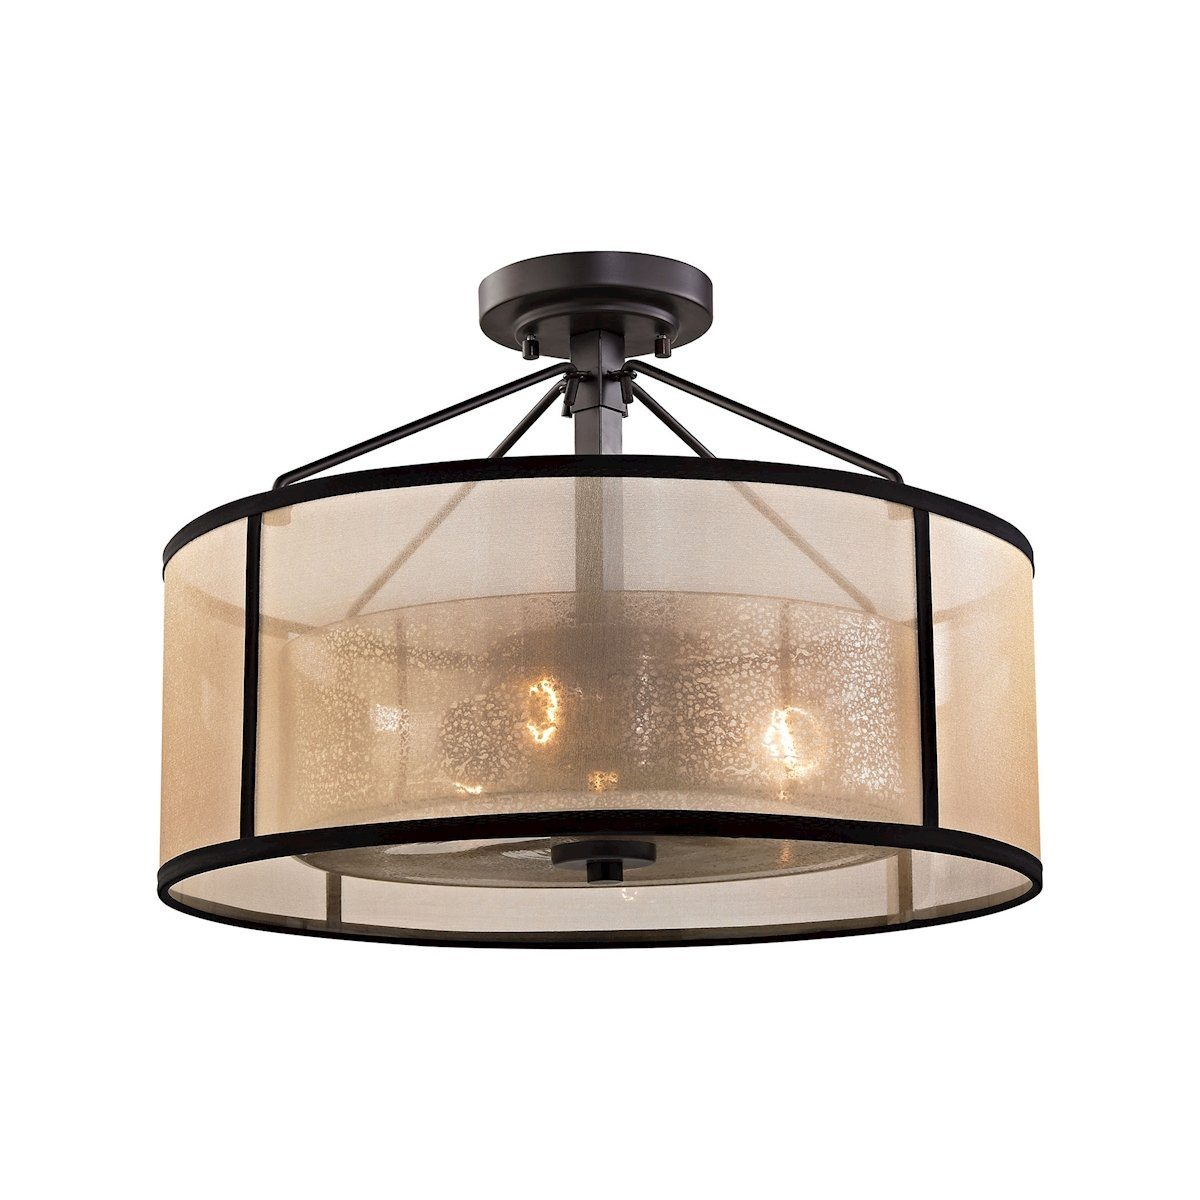 Diffusion 3 Light Semi Flush In Oil Rubbed Bronze Semi Flushmount Elk Lighting